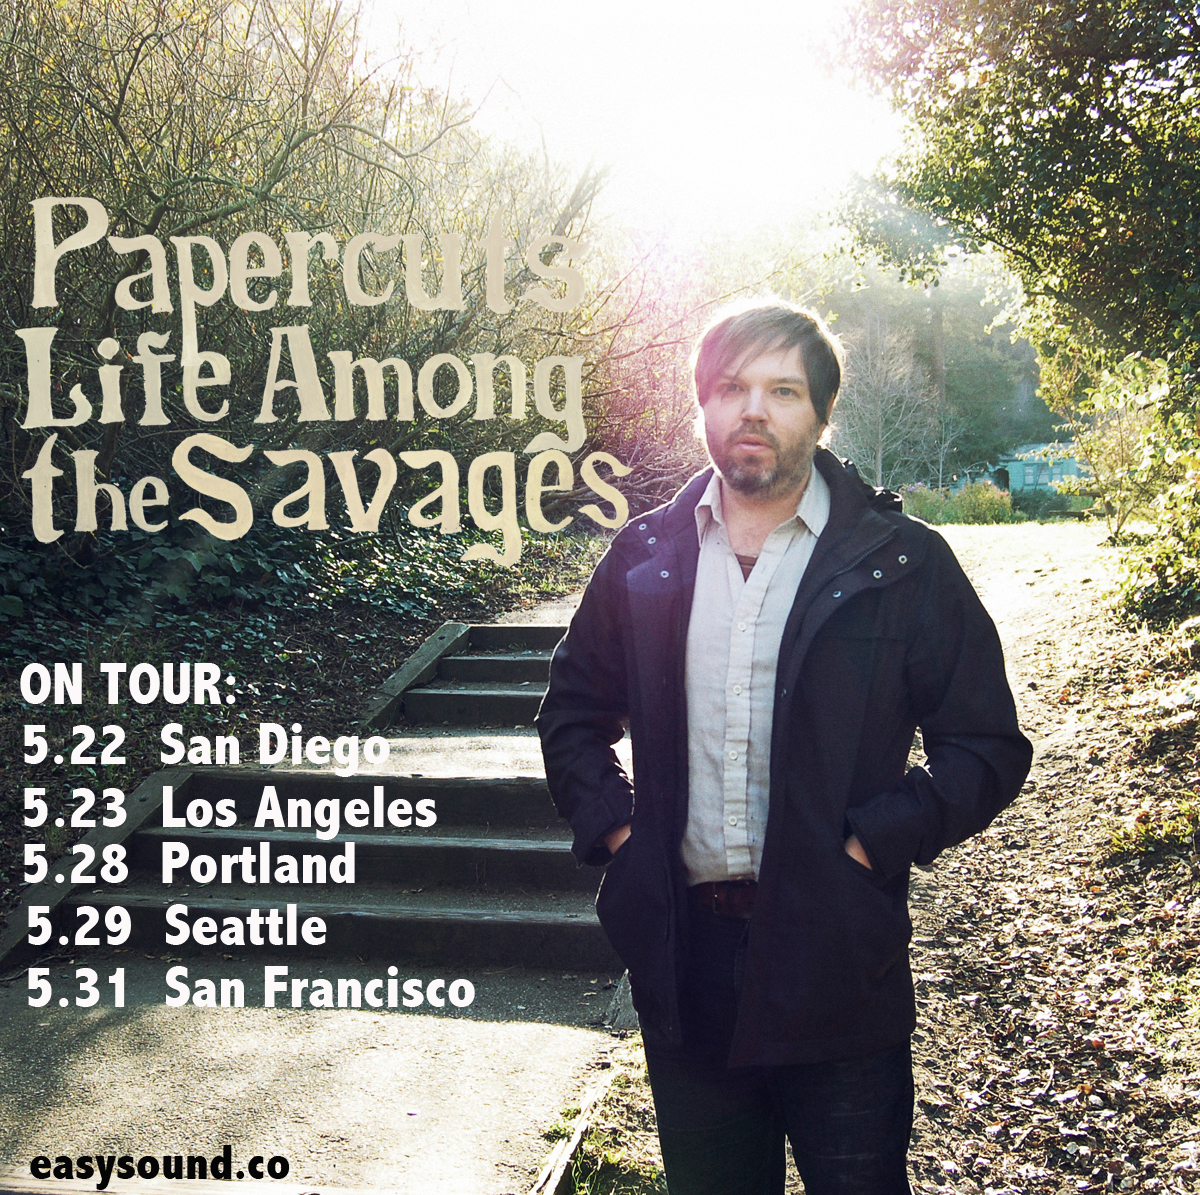 Papercuts hit the road this week! Make sure you get out and see them if in San Diego - Los Angeles - Portland - Seattle - San Francisco.    TOUR DATES:    05/22 - San Diego, CA -   Soda Bar   05/23 - Los Angeles, CA -   The Satellite   05/28 - Portland, OR -   Mississippi Studios   05/29 - Seattle, WA -   Tractor Tavern   05/31 - San Francisco, CA -   The Chapel    Get your own copy of 'Life Among The Savages'!    LP/CD   Direct:   http://easysound.co/store/Papercuts-Savages.php   Record Stores:   http://bit.ly/1mzcHM1   Amazon CD:   http://smarturl.it/Papercuts.CD   Amazon LP:   http://smarturl.it/Papercuts.vinyl    DIGI   iTunes:   http://smarturl.it/Papercuts.iTunes   Amazon:   http://smarturl.it/Papercuts.AMZMP3   eMusic:   http://bit.ly/1qaYNFv